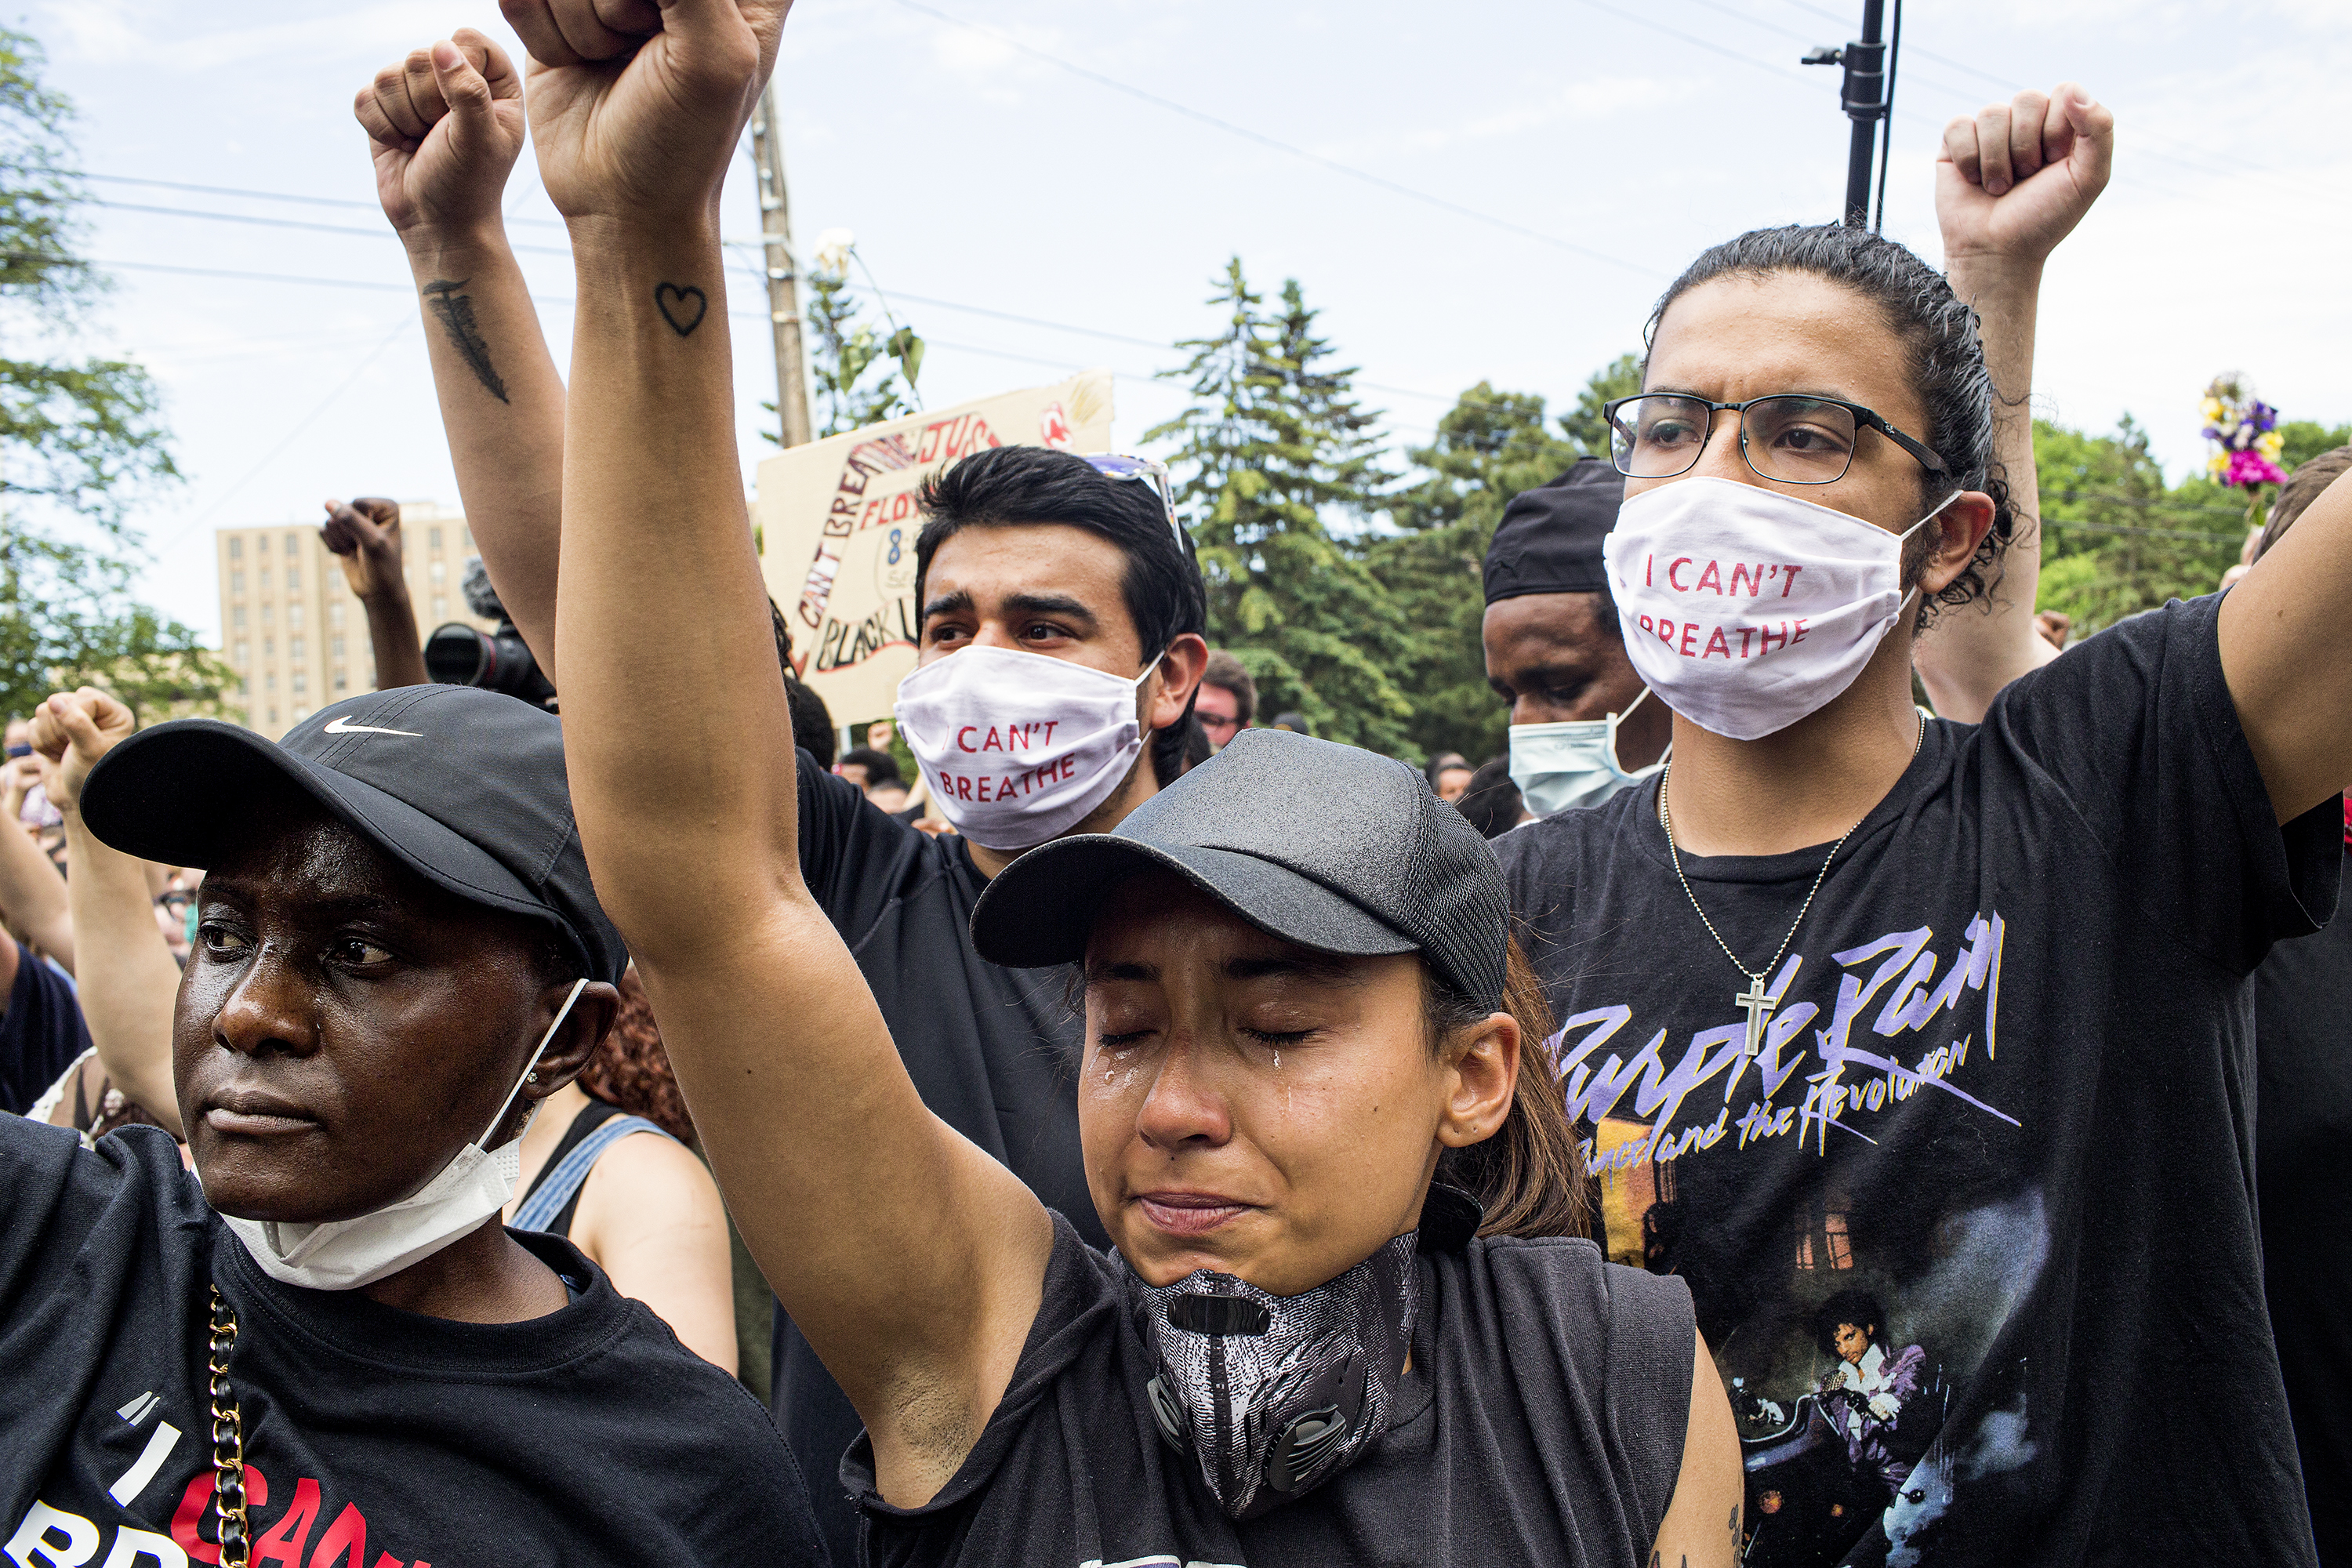 A group of people, men and women, of all ethnicities, dressed in black and wearing masks, raise their fists.